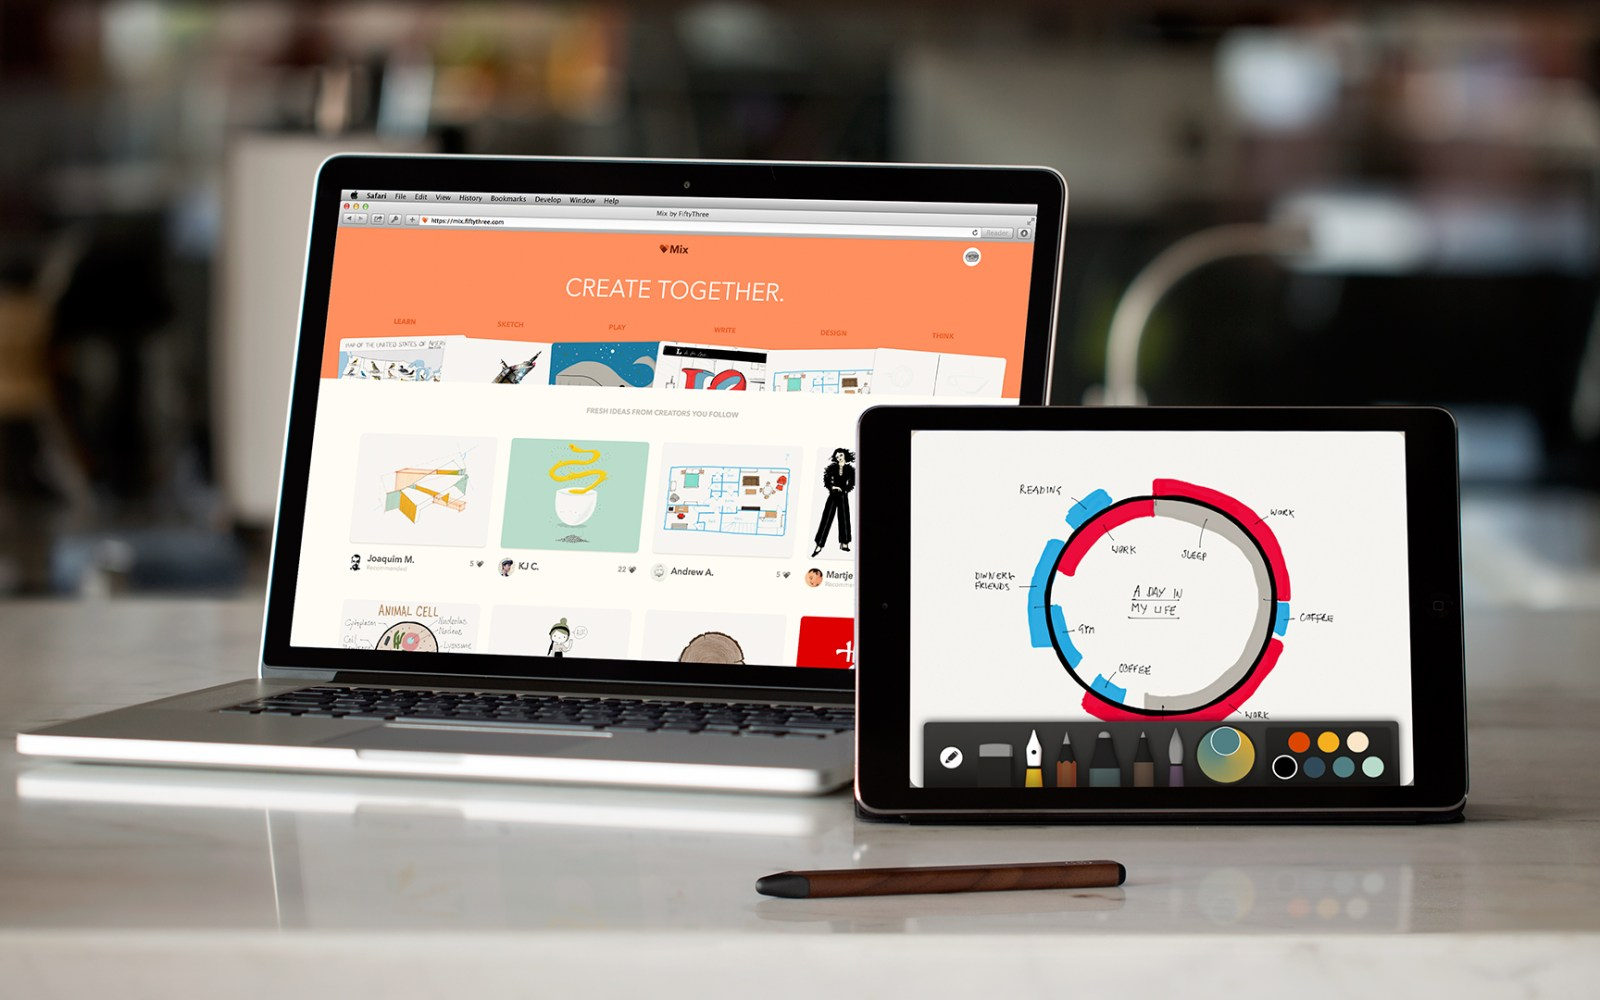 Paper by FiftyThree updated with Adobe Creative Cloud integration, push notifications and other improvements